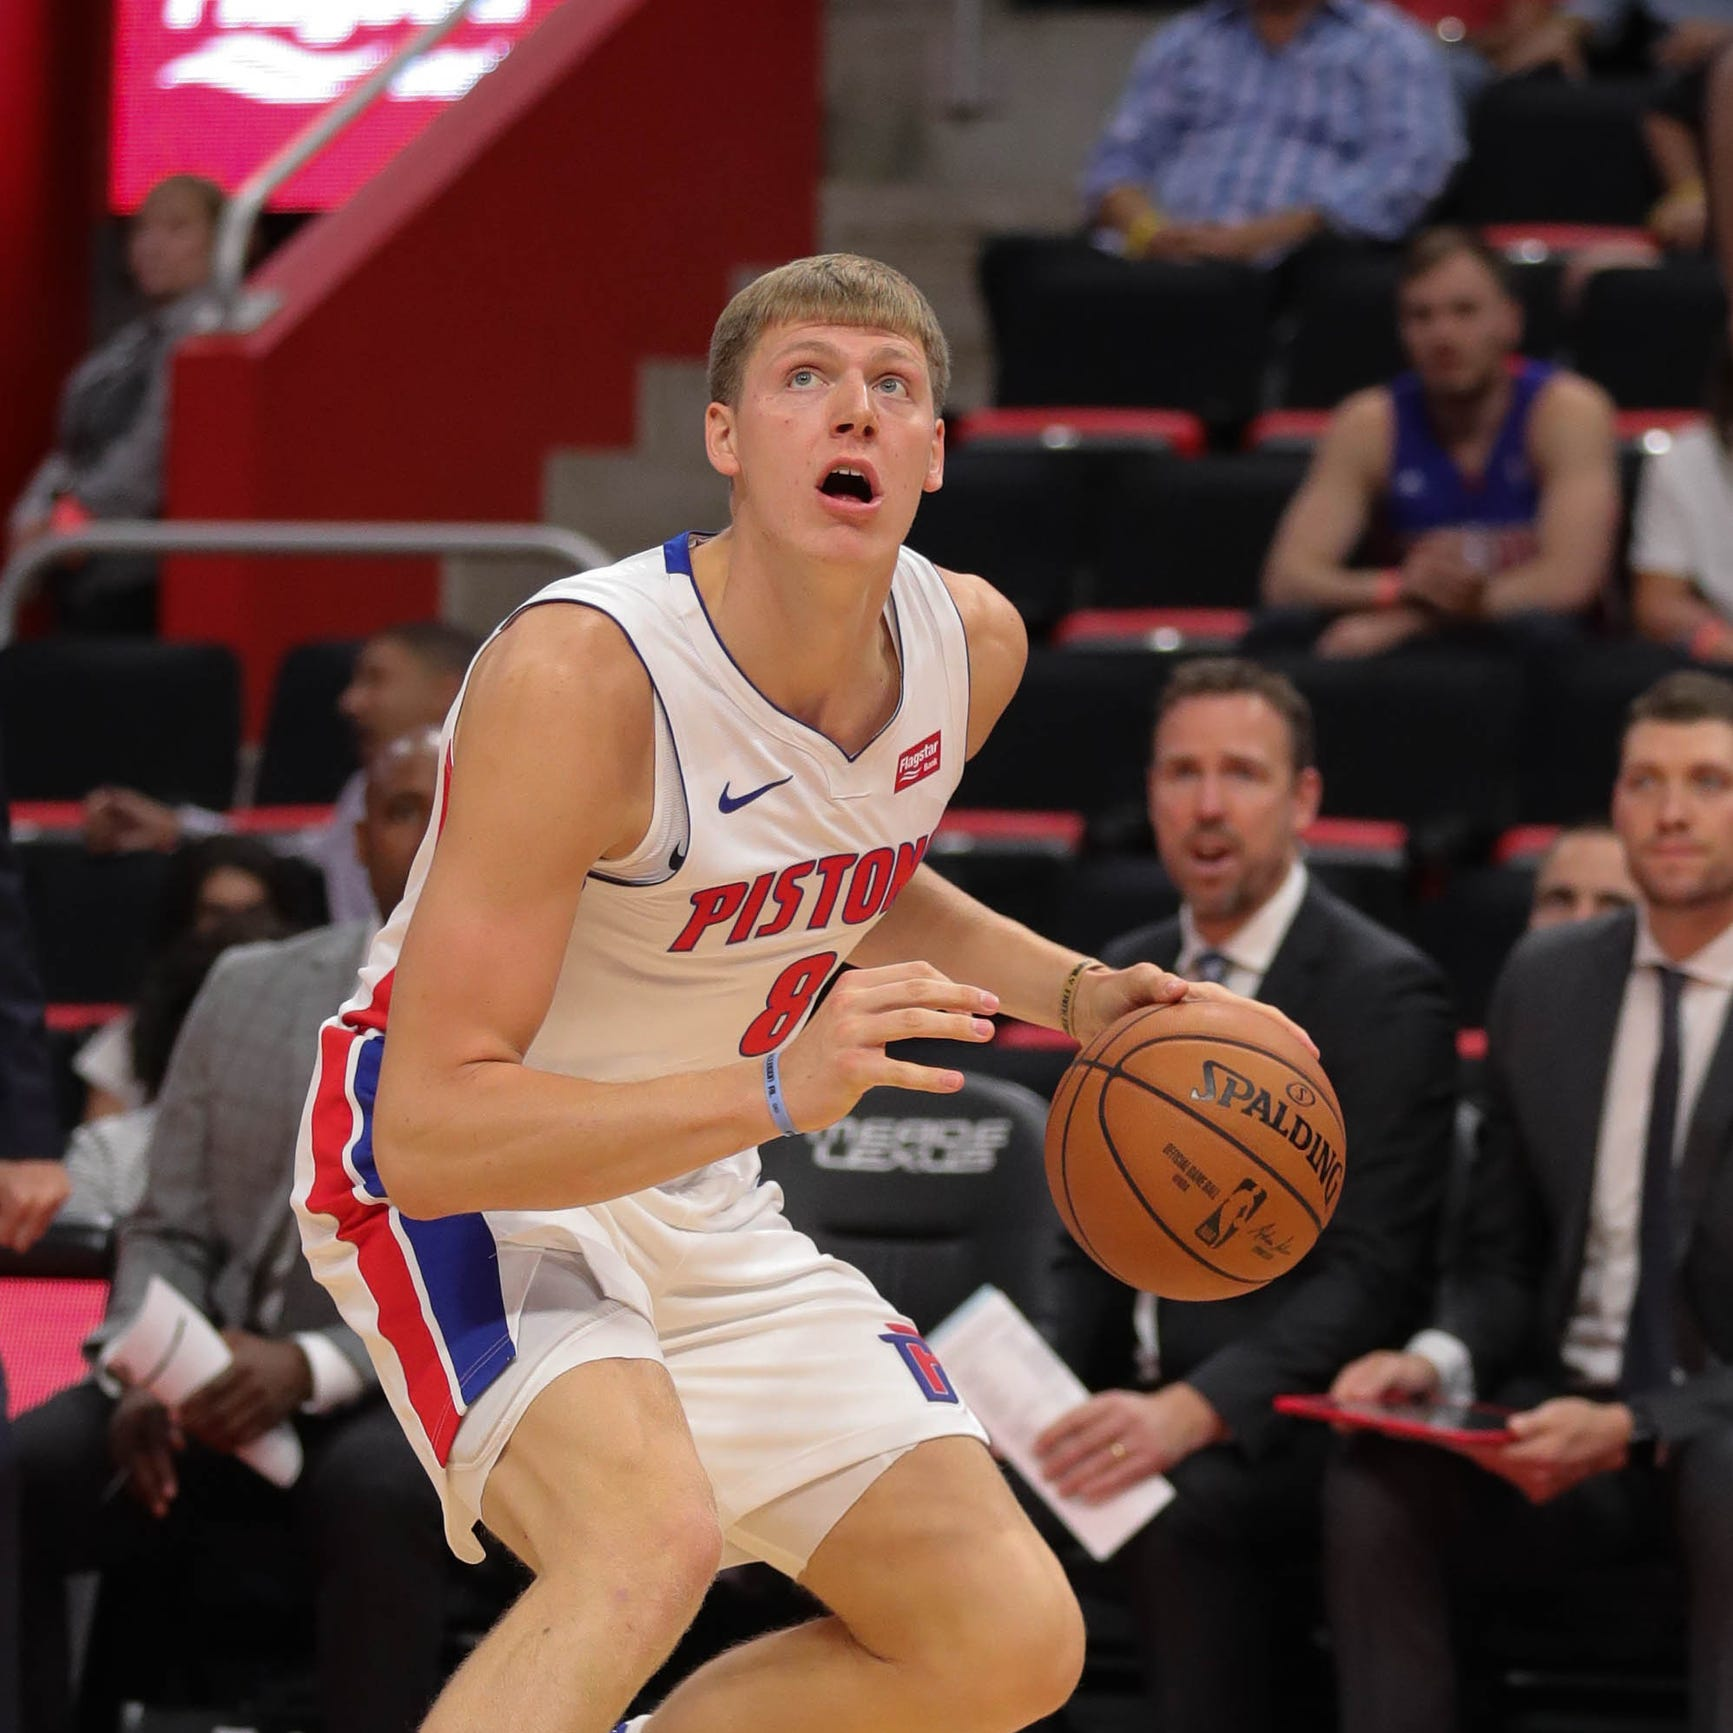 Detroit Pistons' 2016 pick Henry Ellenson likely off to New York Knicks